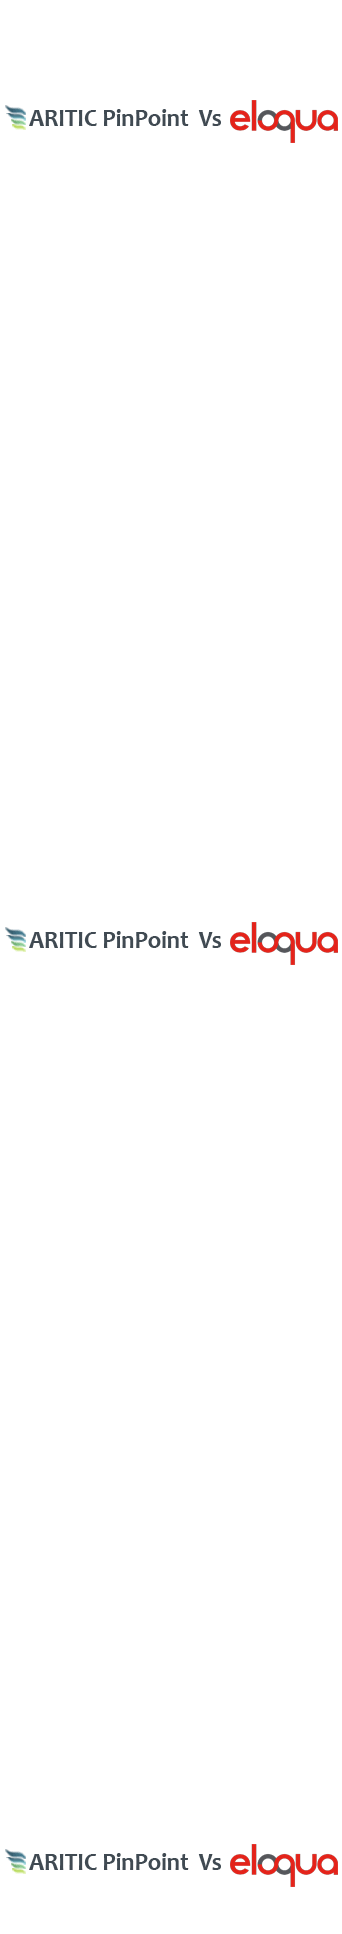 aritic pinpoint vs. eloqua